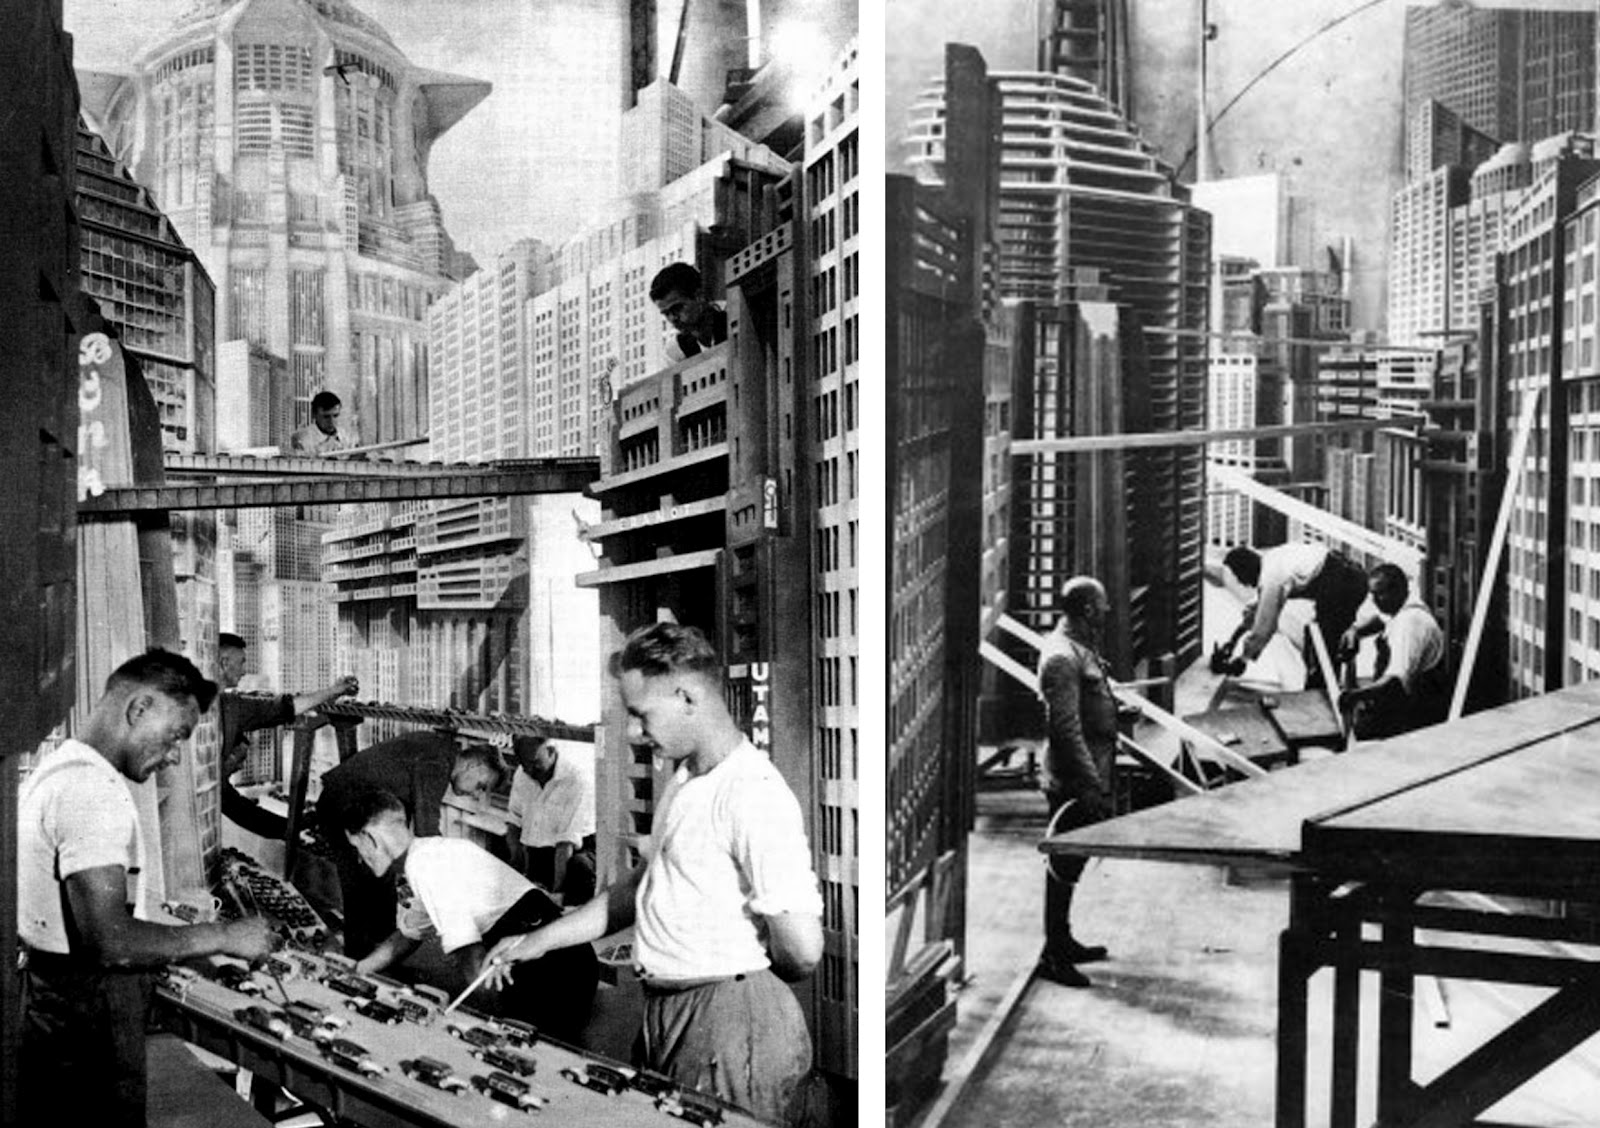 Source: Byronlast.com Making of Metropolis